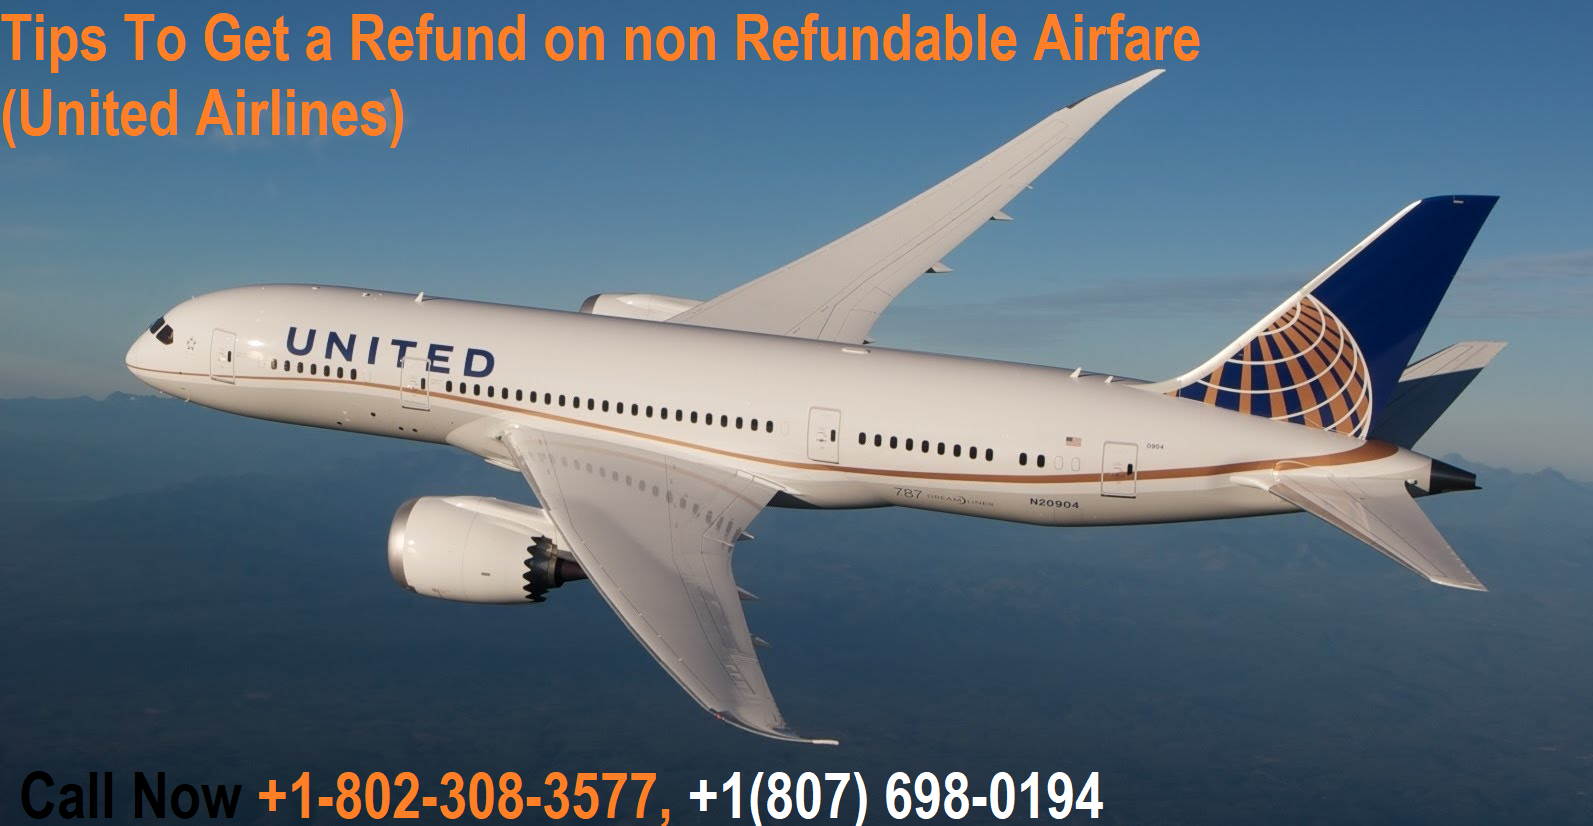 Tips To Get a Refund on non Refundable Airfare (United Airlines)